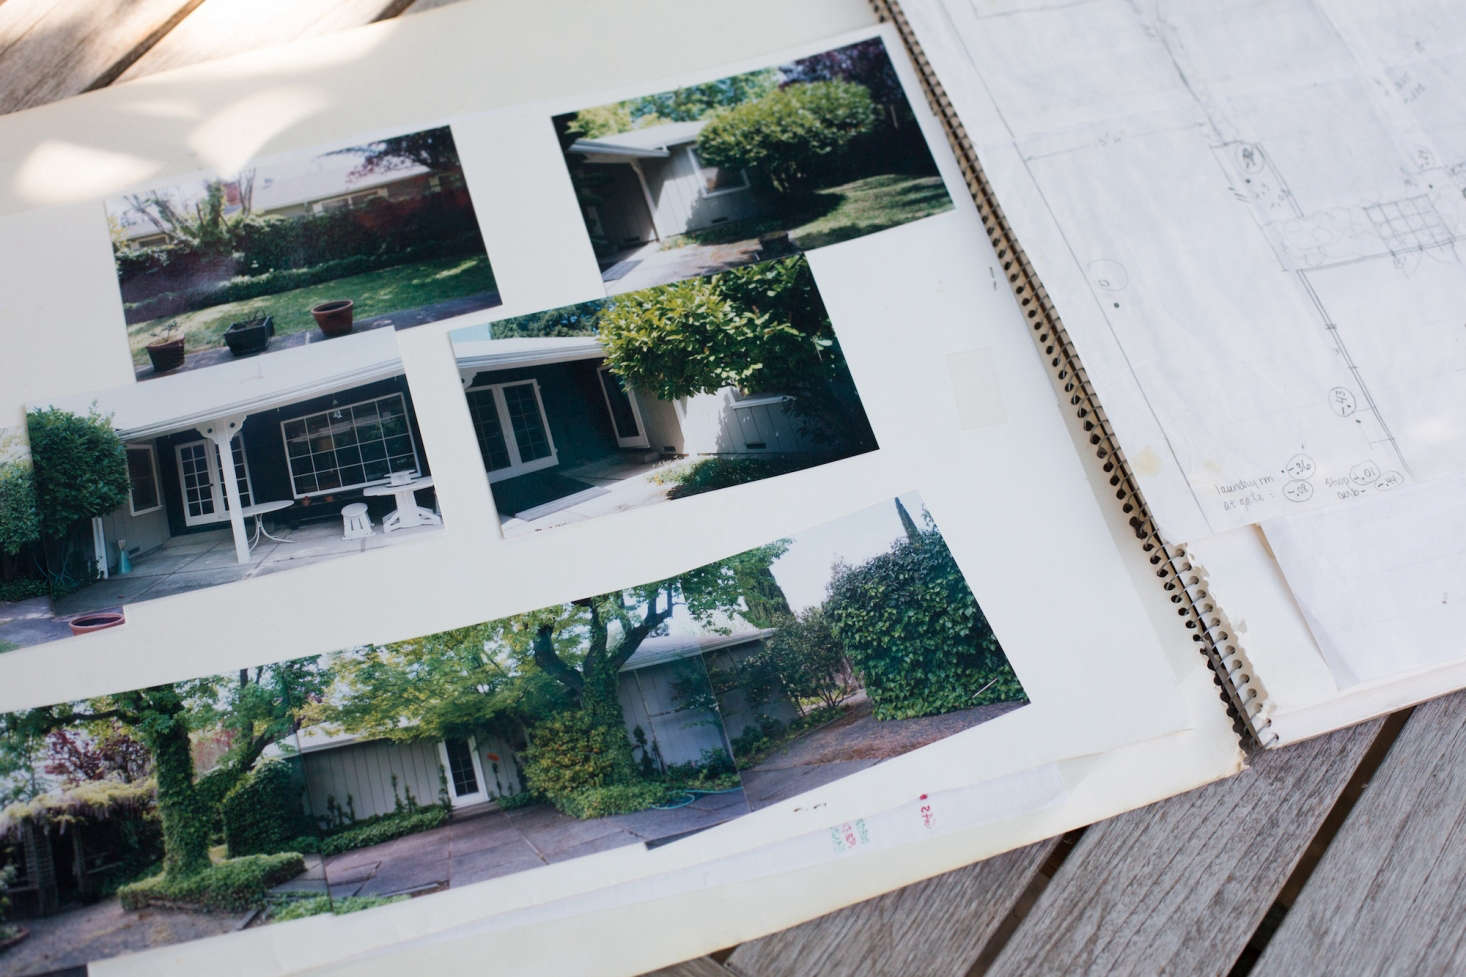 A scrapbook documents the before-and-after transformation, including a snapshot (at bottom) that shows the original back facade in its windowless incarnation. Clay liberated a pair of liquidambar trees from the ivy shrouds that were growing up their trunks.